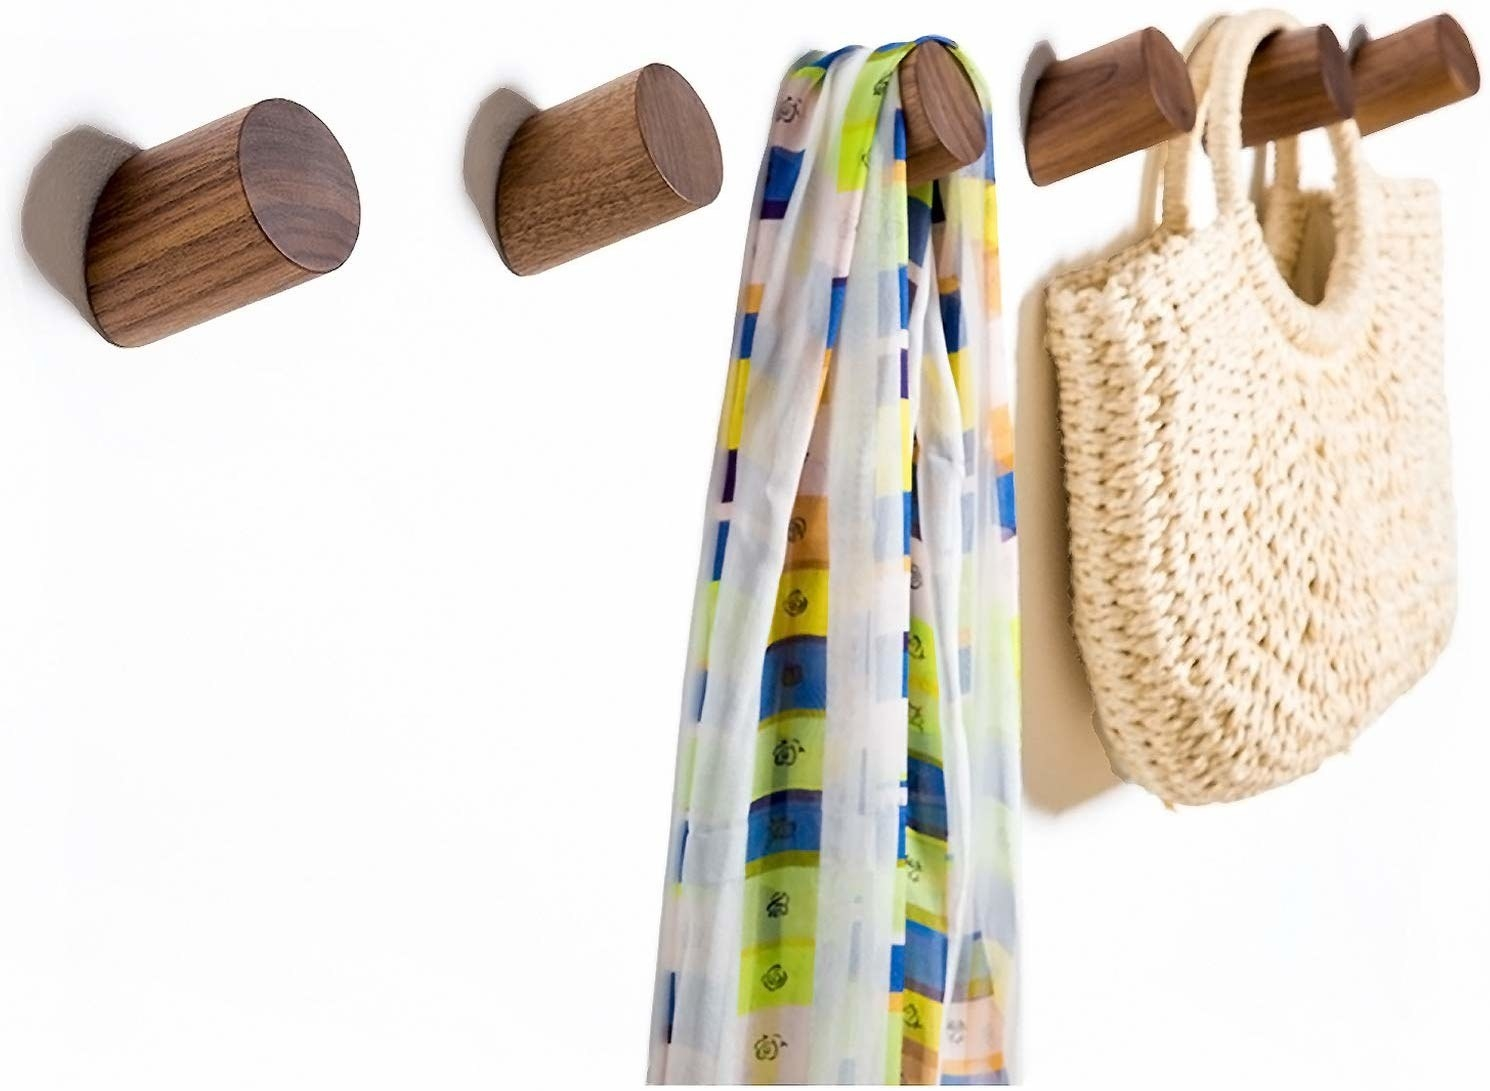 Wooden wall hooks installed to a wall with bags and accessories hanging from them